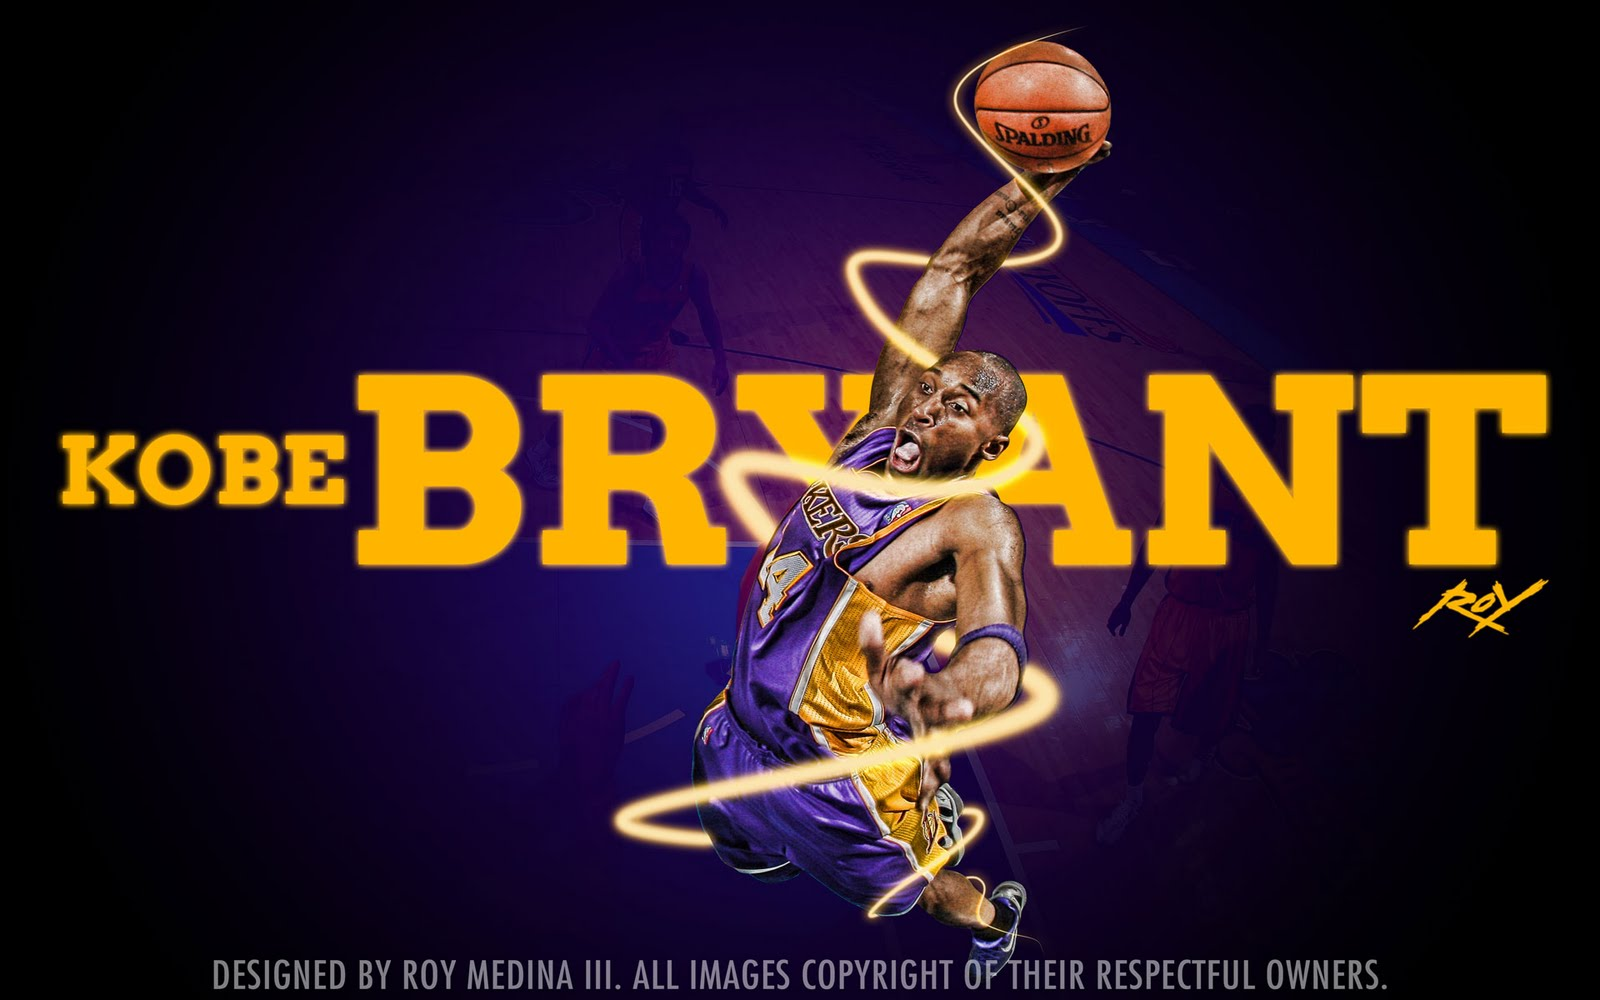 http://4.bp.blogspot.com/-Sv-X8zlzOZ0/Tib8Z4oEQiI/AAAAAAAAHdA/GPvJLJA1J-g/s1600/Kobe-2011-Dunk-Widescreen-Wallpaper-BasketWallpapers.com-.jpg